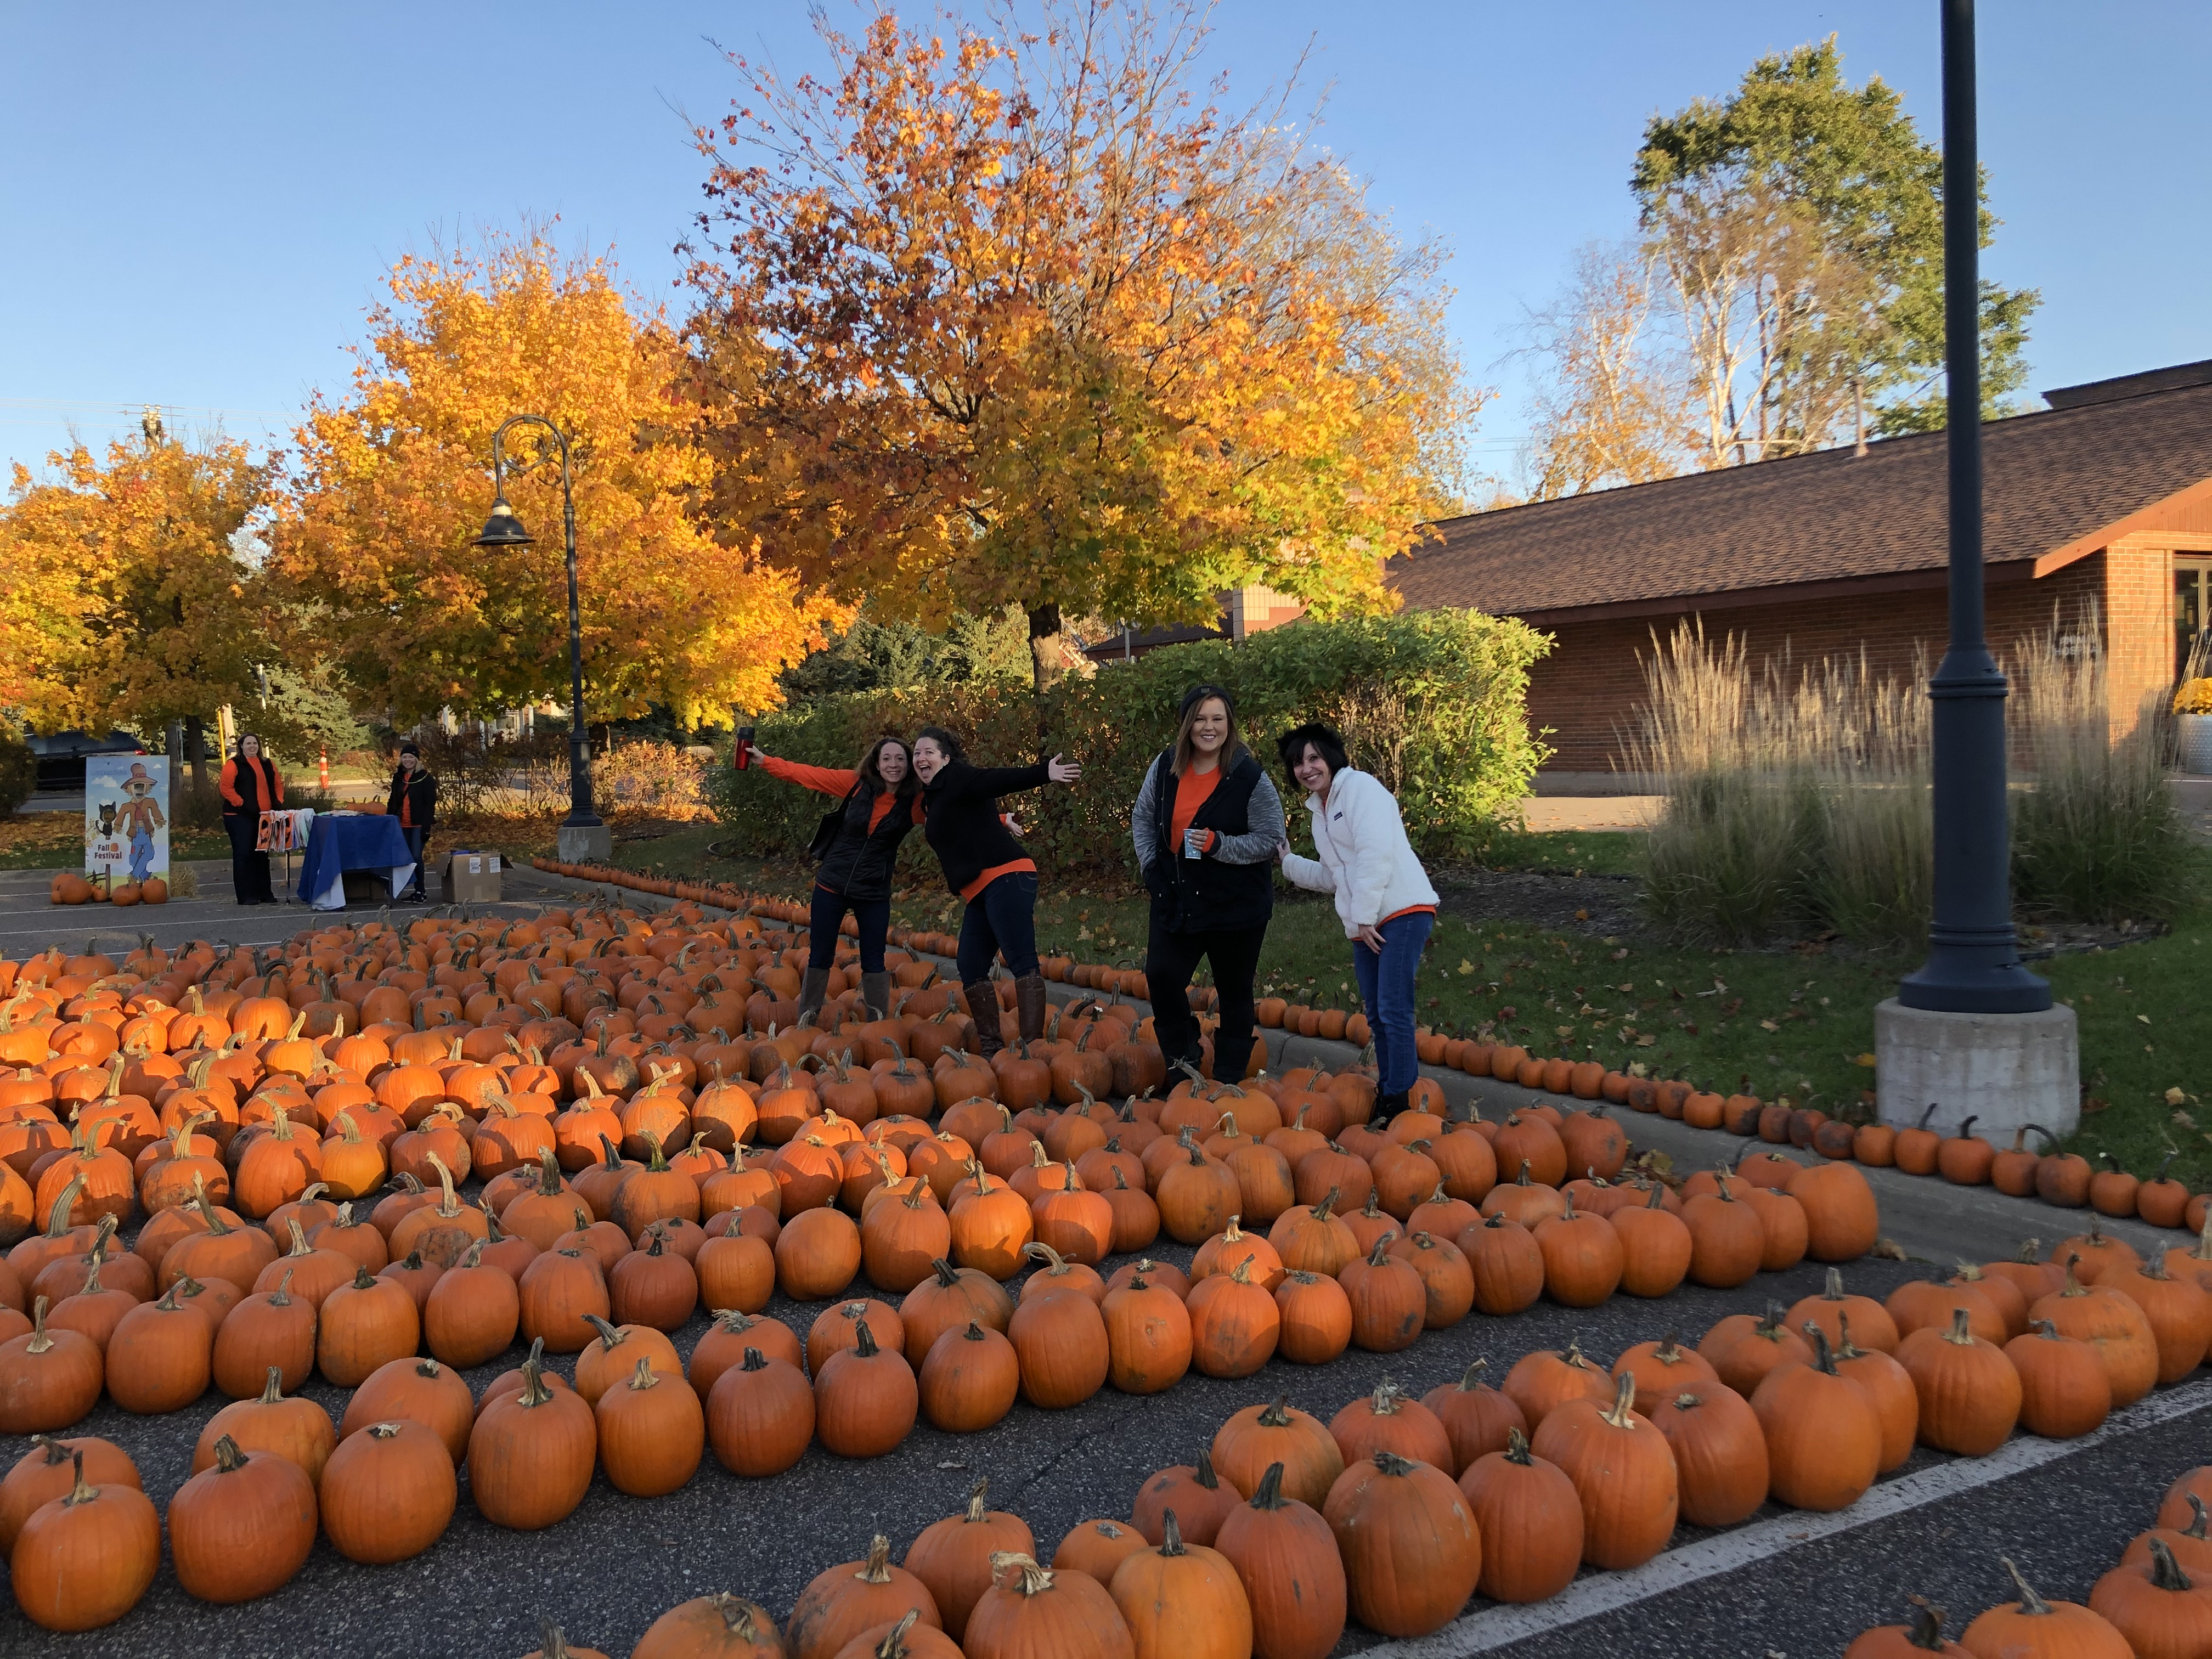 Gateway Bank associates standing around pumpkins at the fall festival laughing.